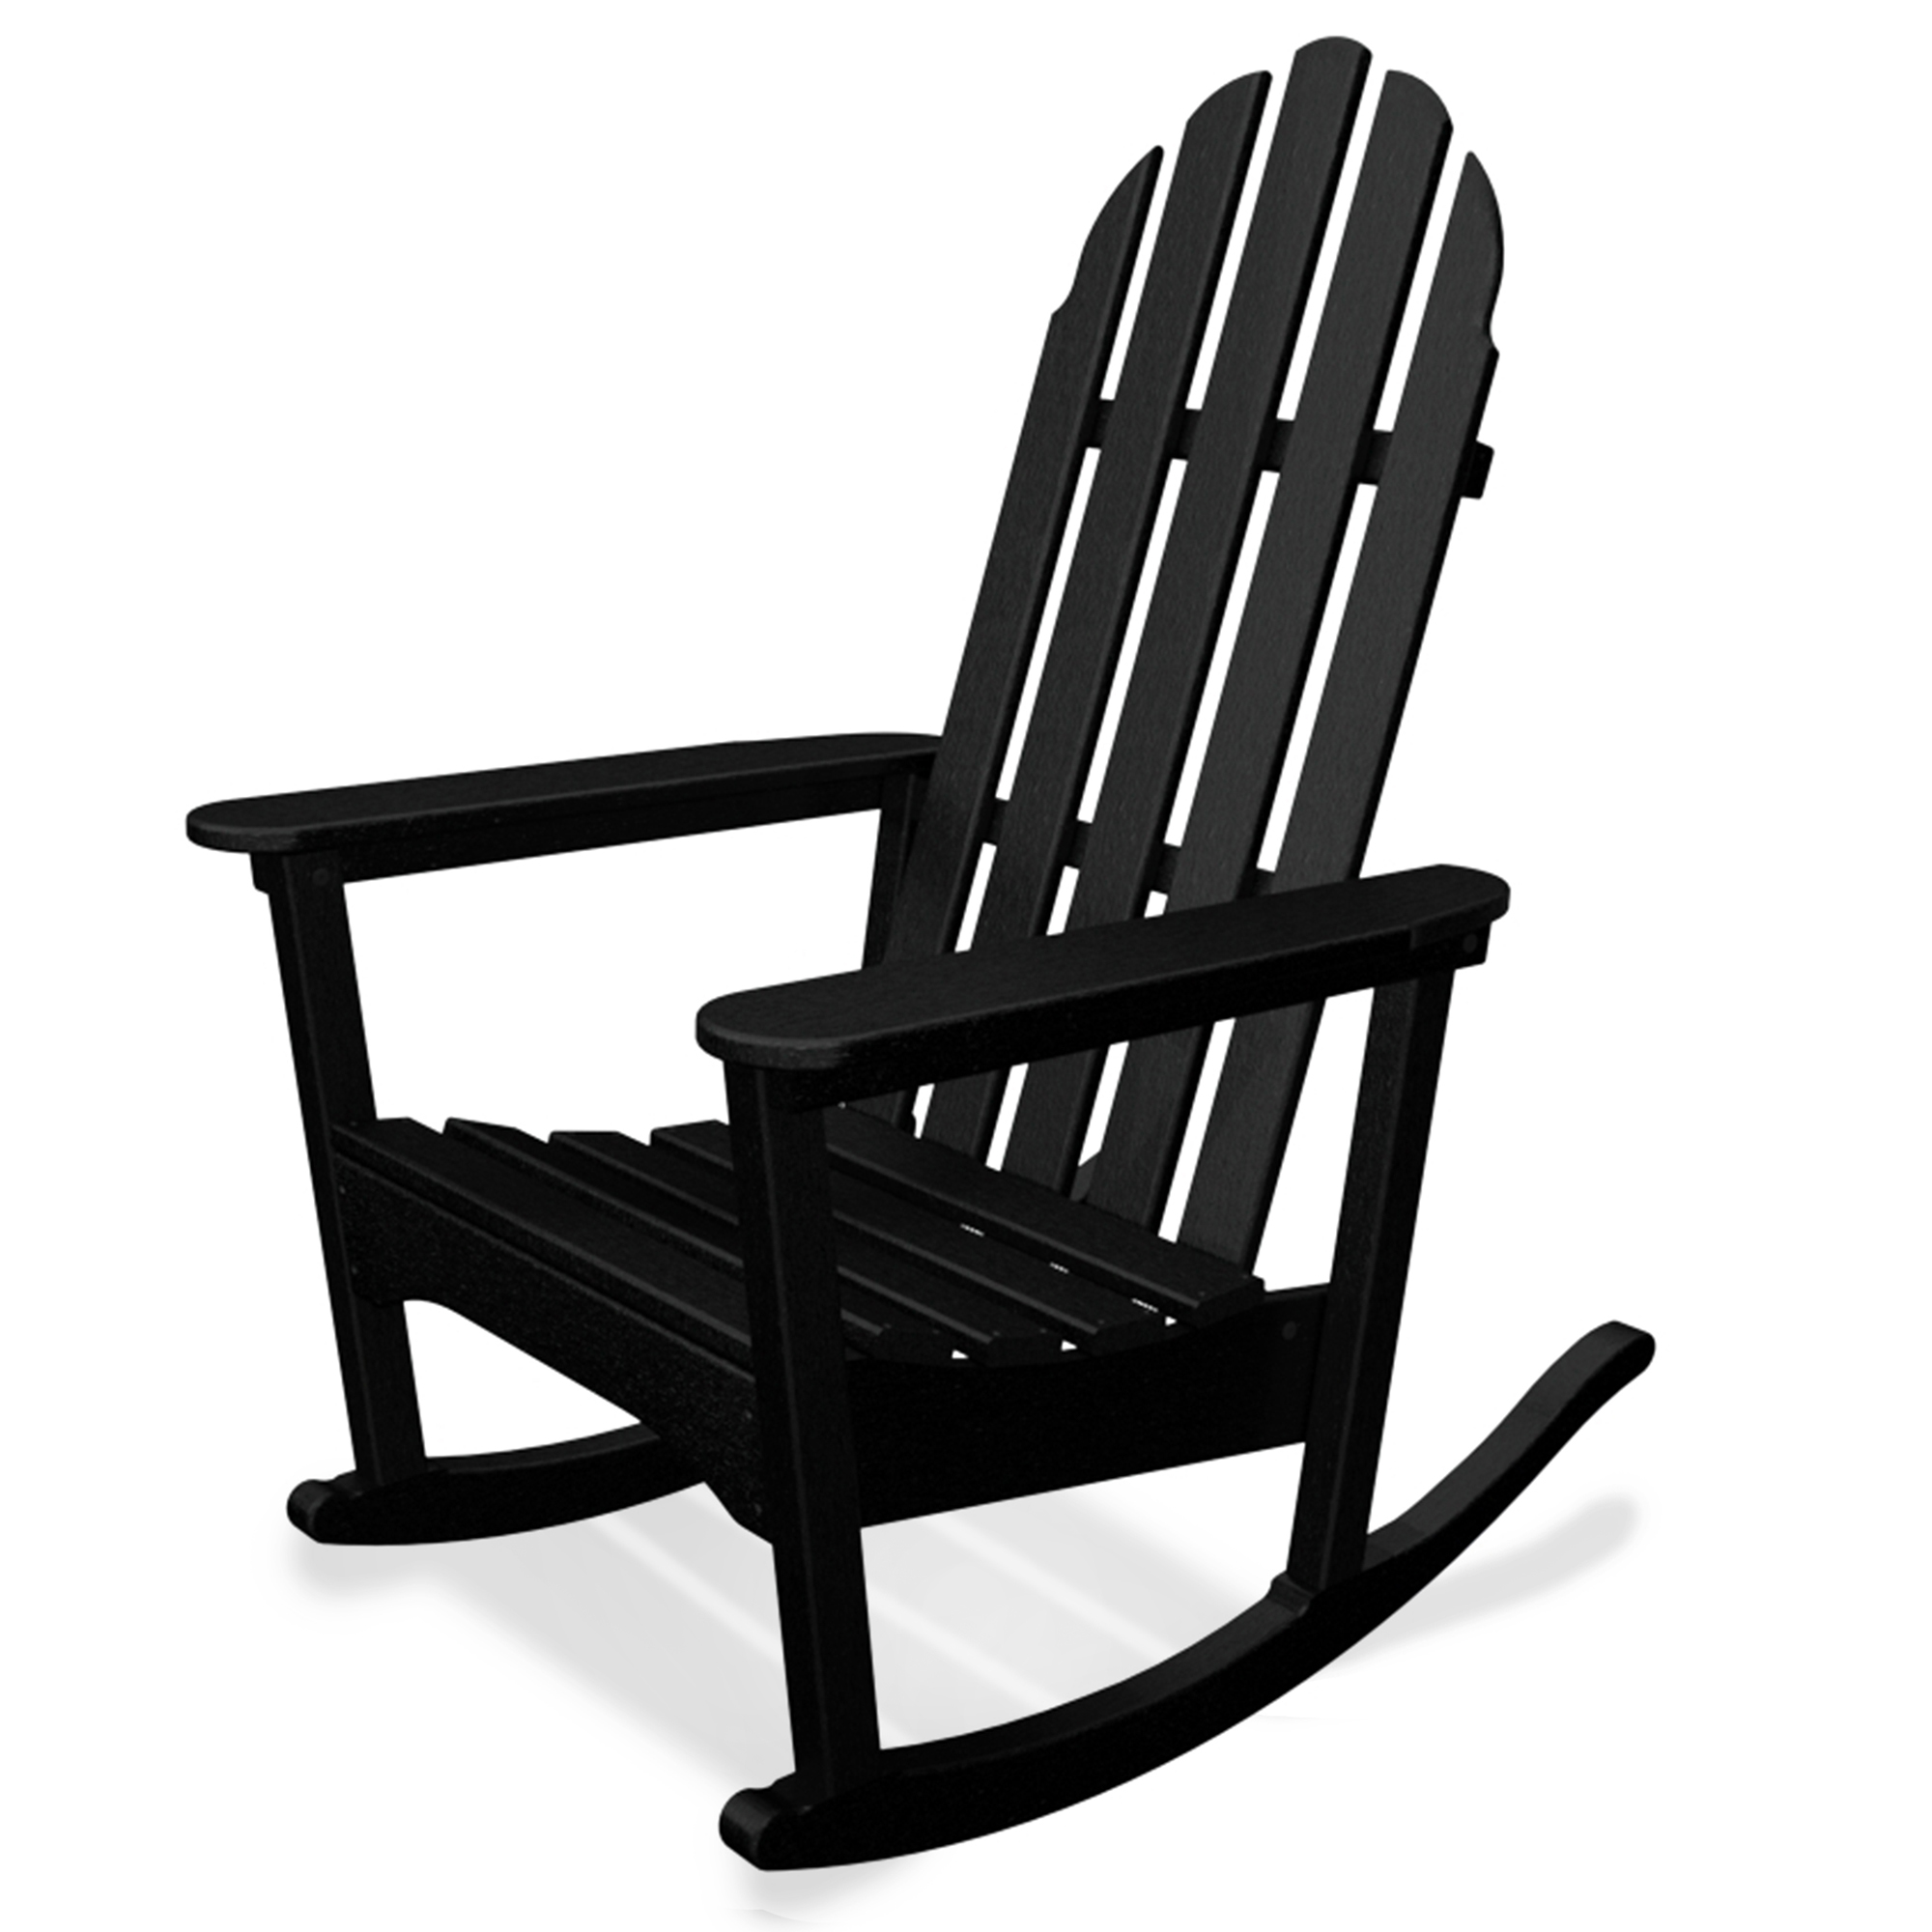 Remarkable Polywood All Weather Adirondack Rocker Pdpeps Interior Chair Design Pdpepsorg